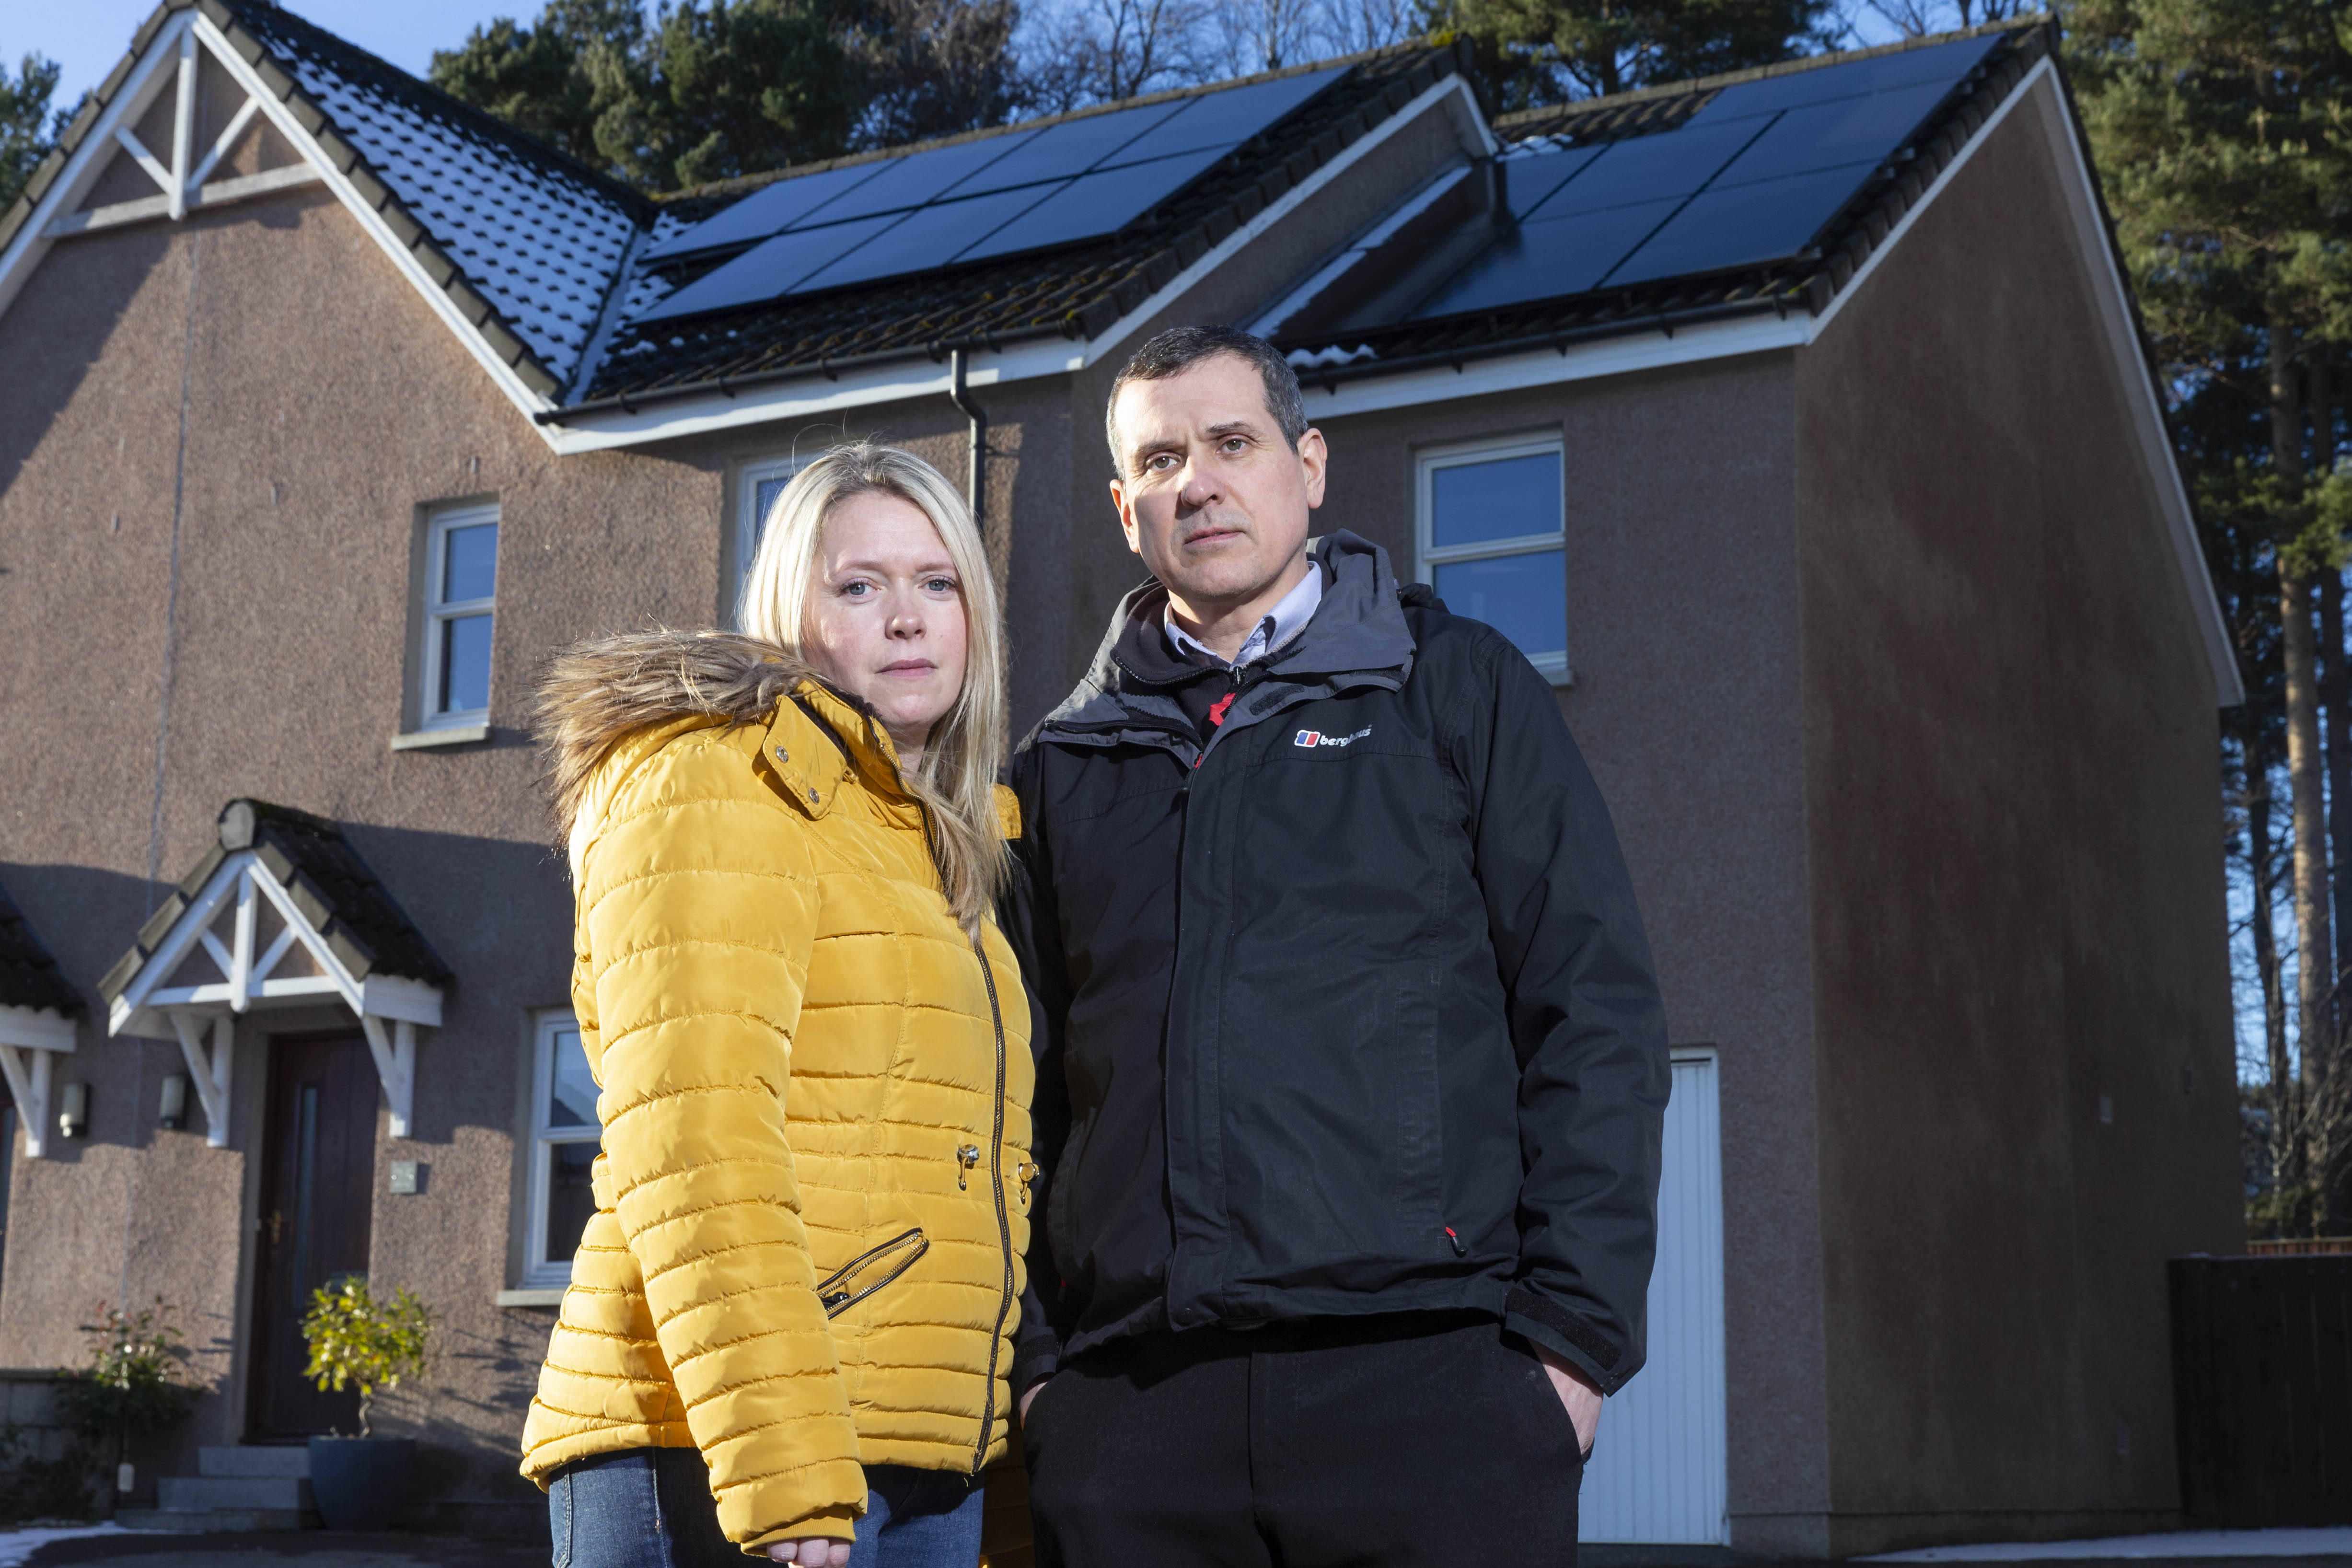 Kevin Tracy, who bought some solar panels and has had trouble with the installers. (Ross Johnstone/Newsline Media)